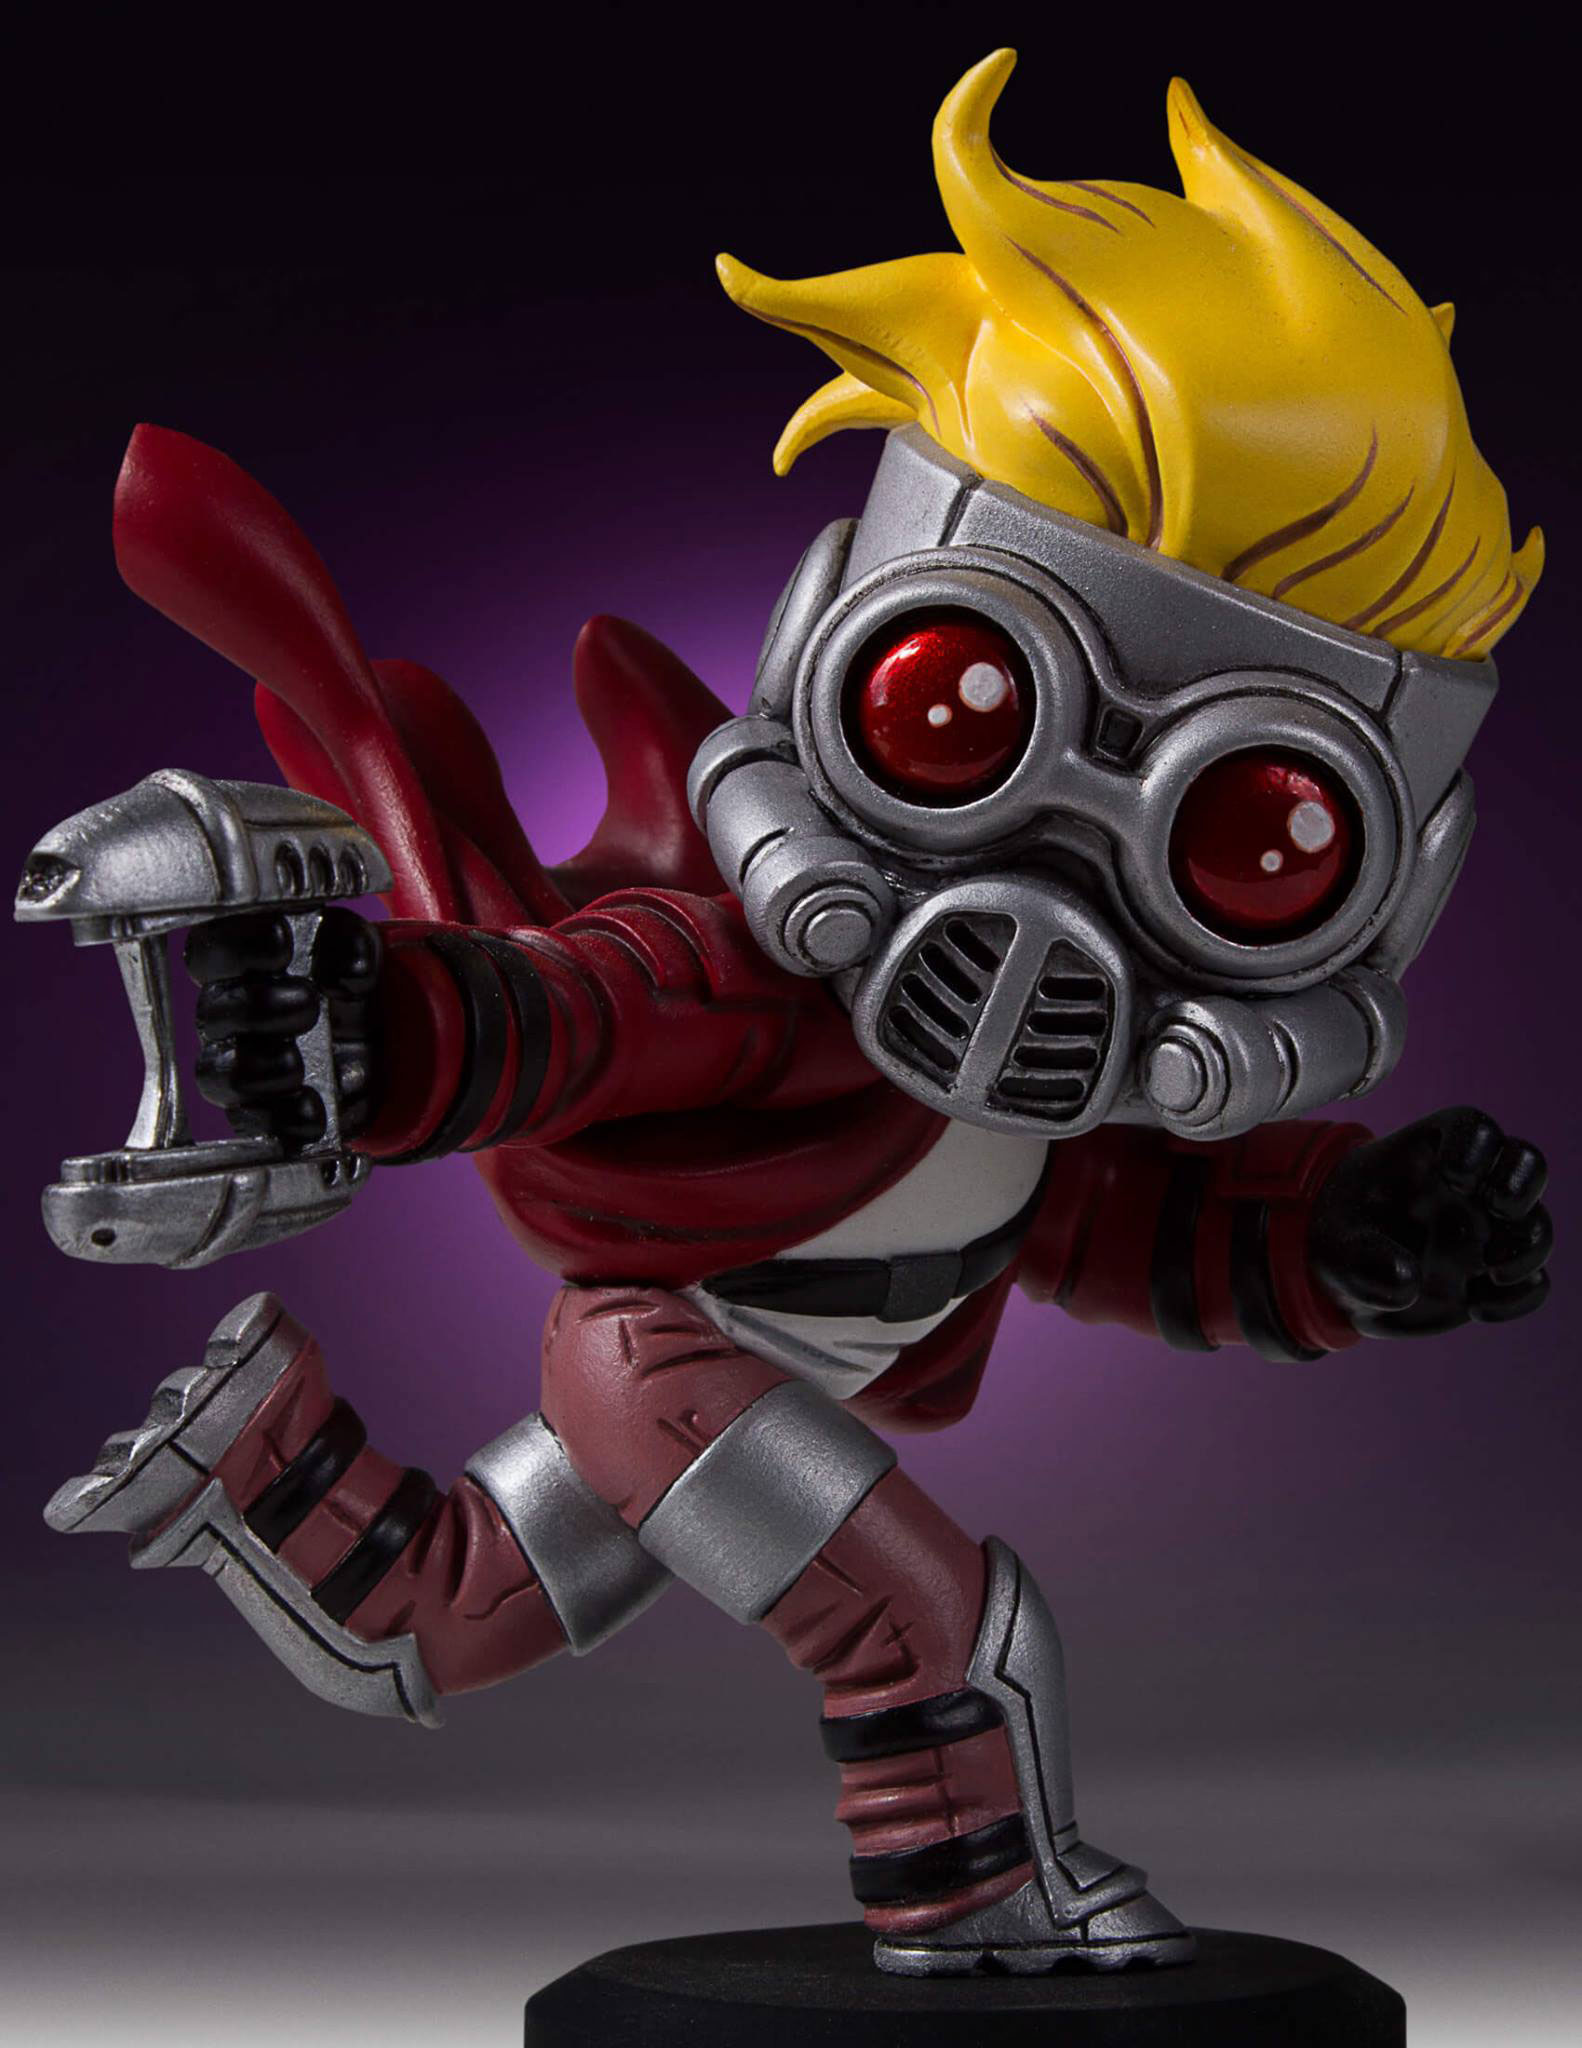 gentle-giant-star-lord-guardians-of-the-galaxy-statue-3